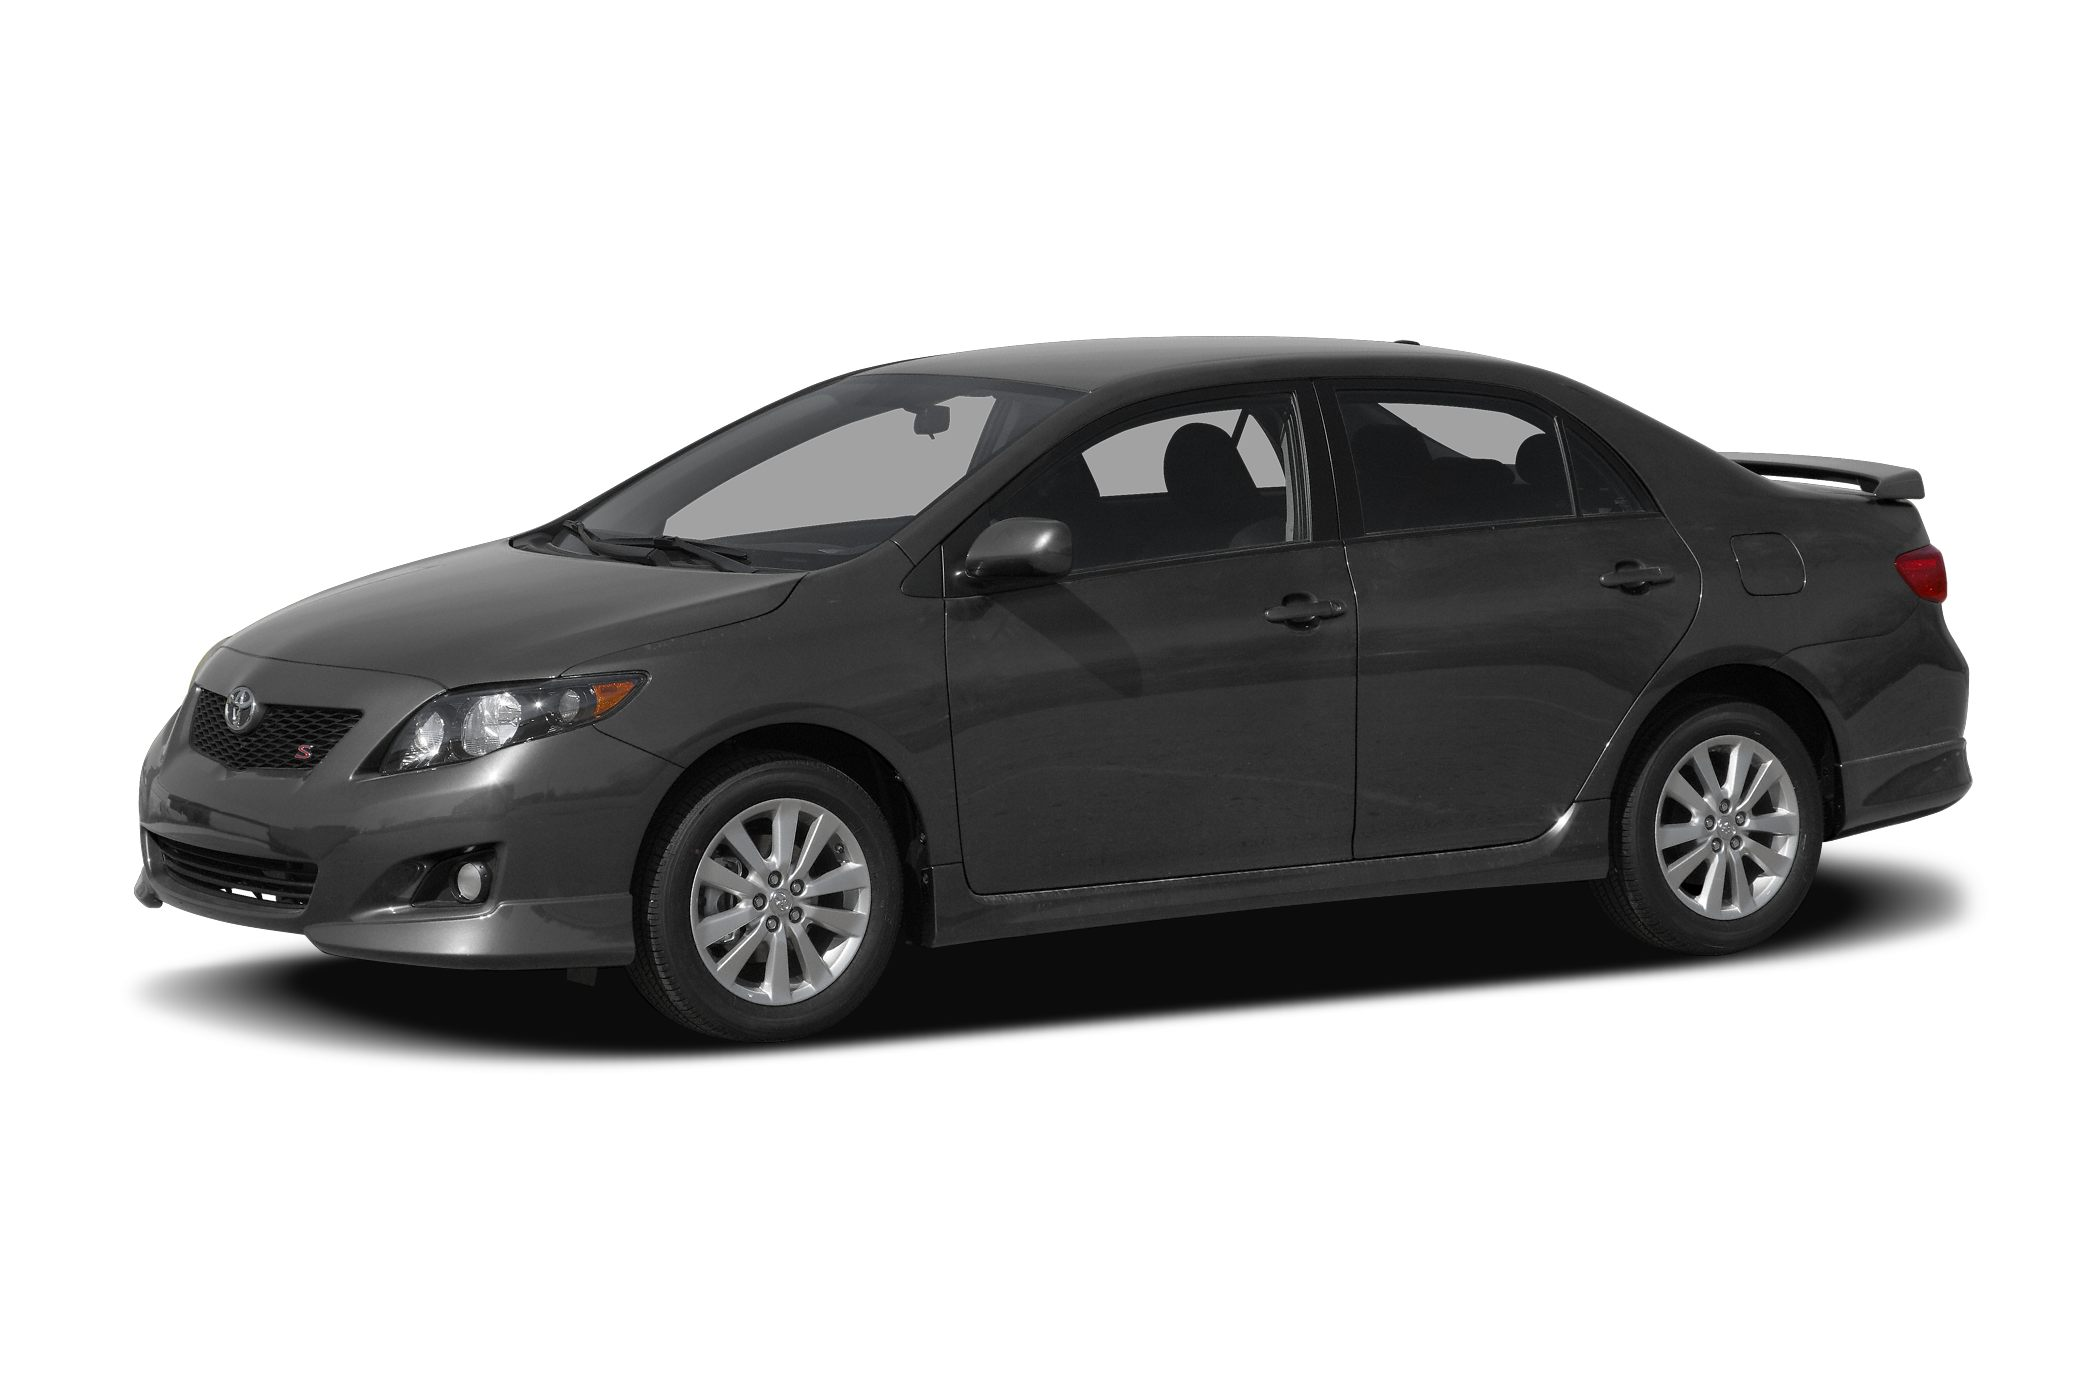 2010 Toyota Corolla S JUST REPRICED FROM 11788 EPA 34 MPG Hwy26 MPG City S trim Moonroof CD